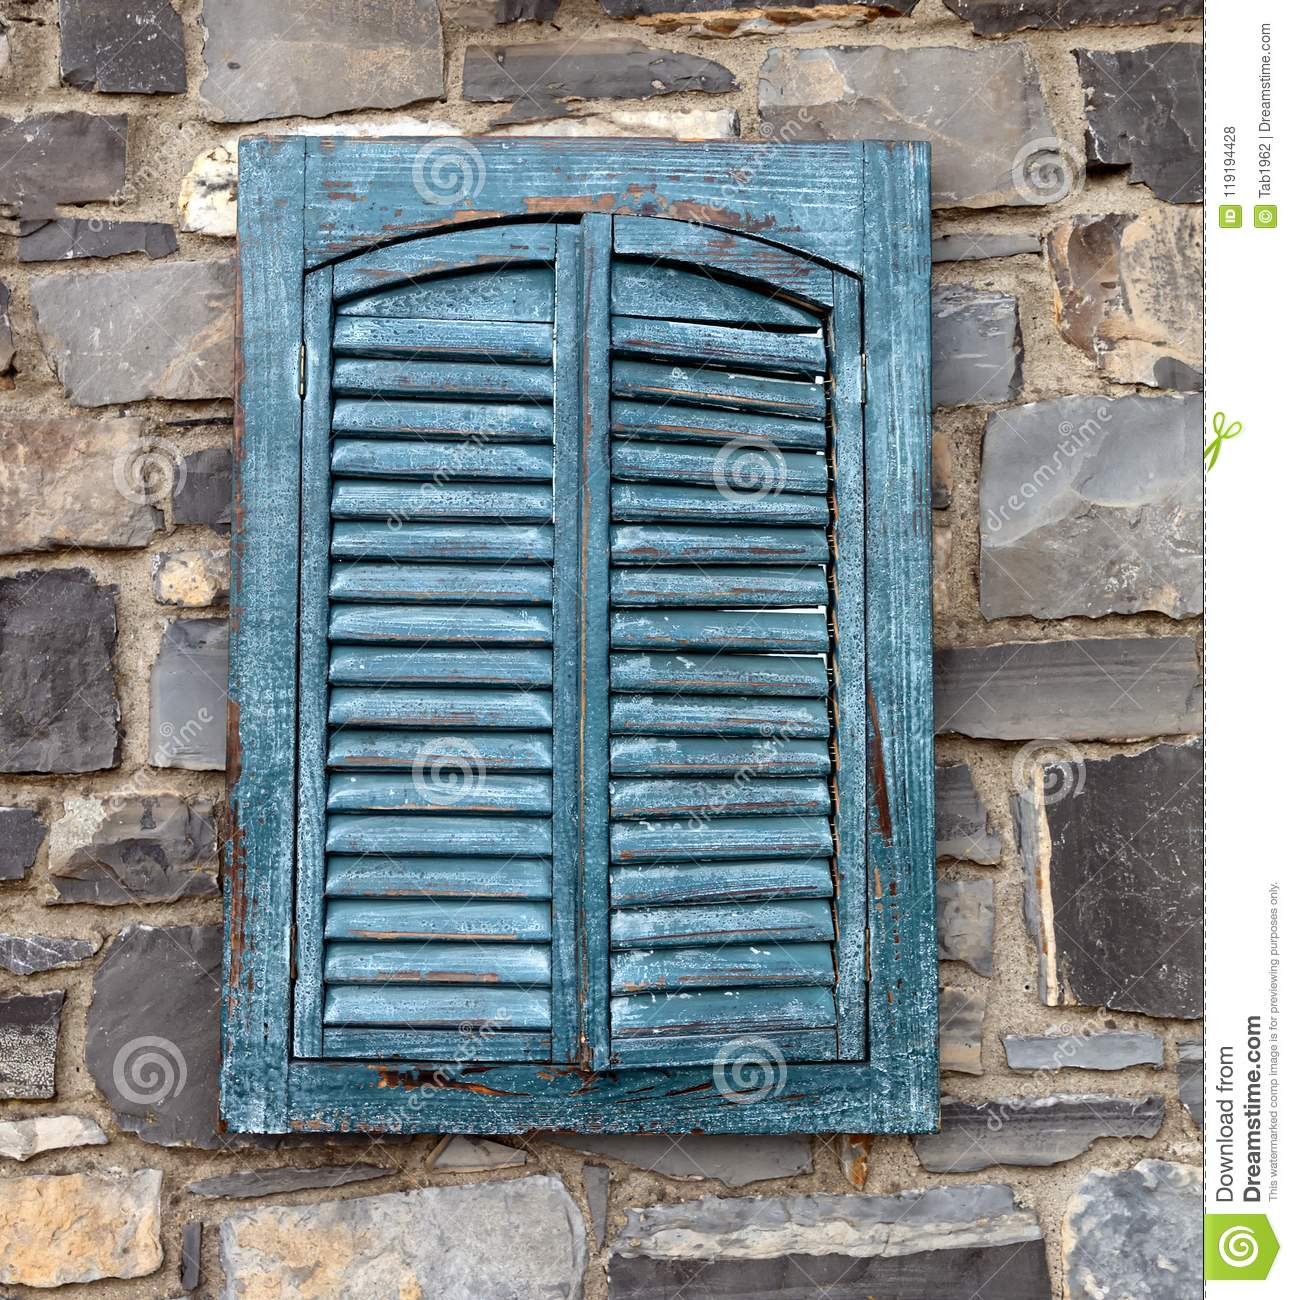 Vintage Exterior Shutters On Aged Stone Wall Structure Stock